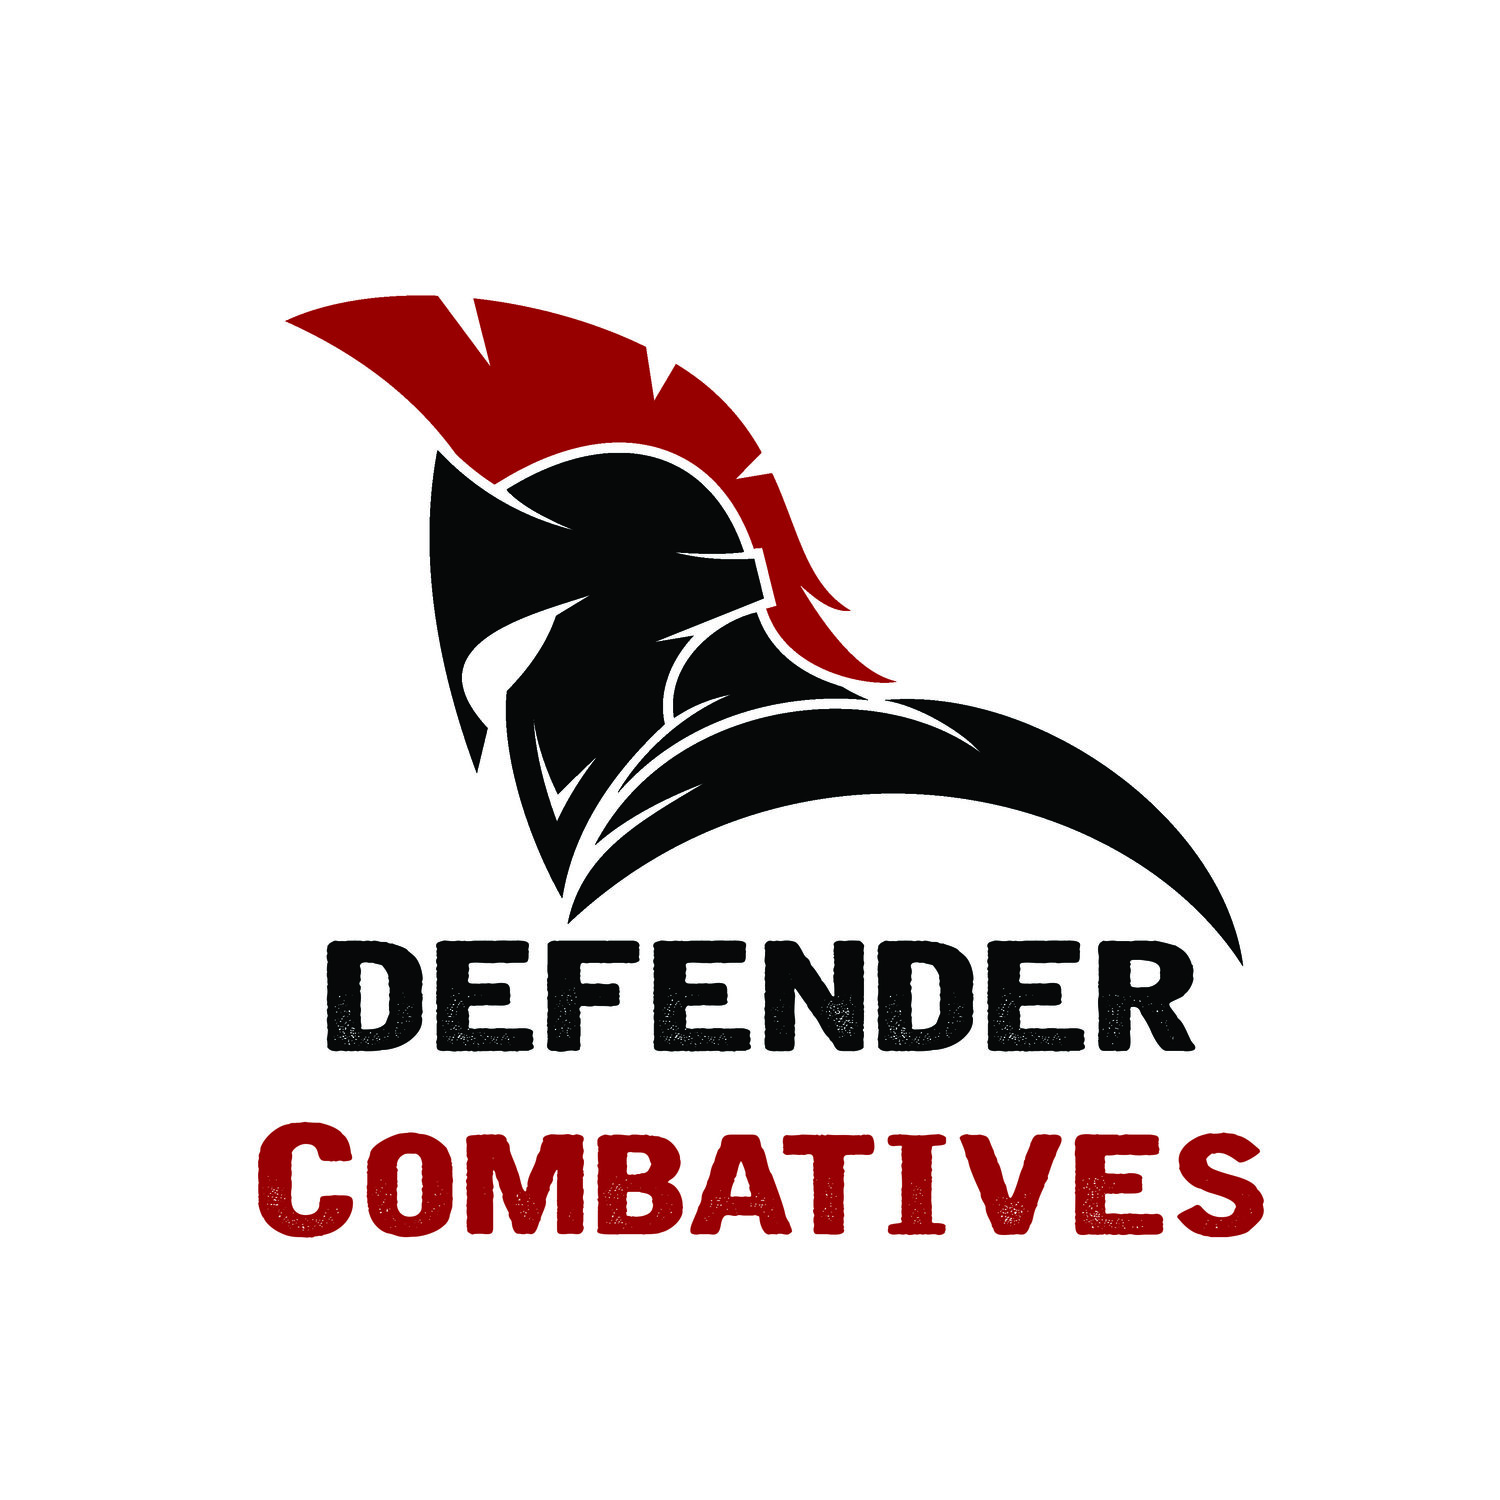 Defender Combatives, LLC